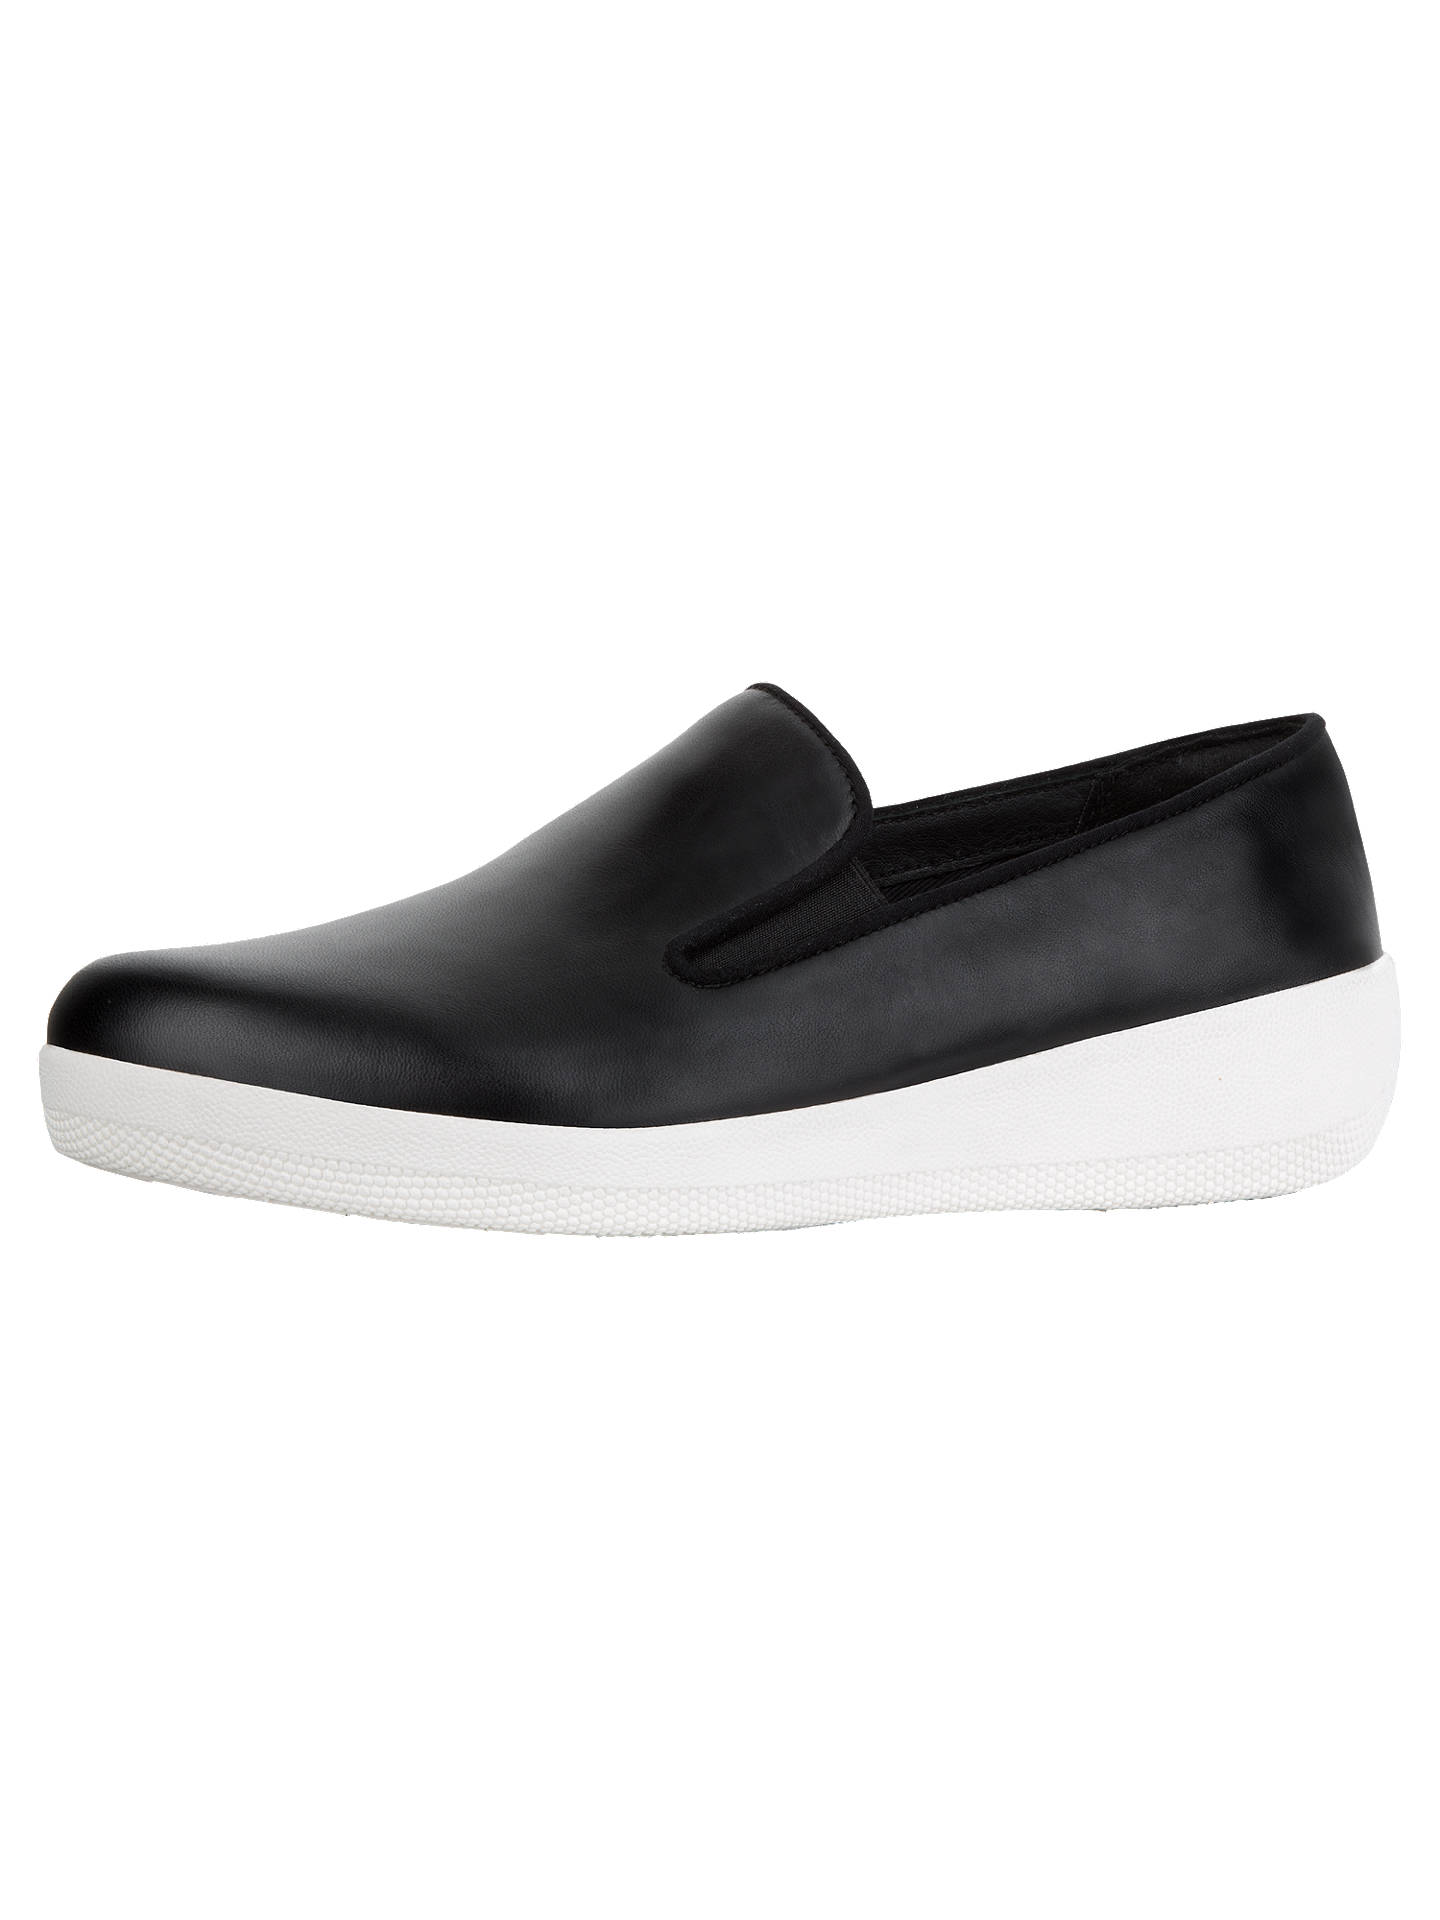 bb7d0b9a0 Buy FitFlop Superskate Wedge Heel Loafers